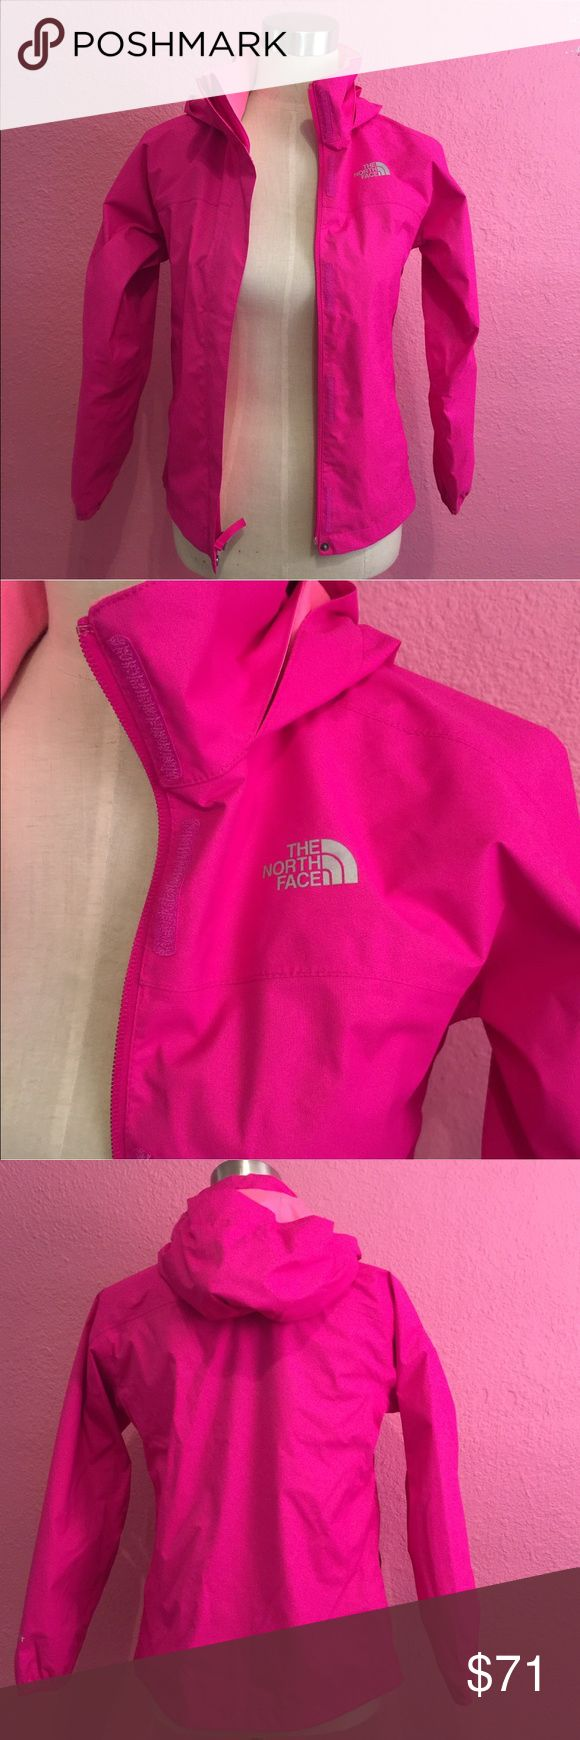 Pink North Face rain jacket. Kids & Mystery items Pink North Face rain jacket.  This listing has been updated.  You will receive this Jacket plus an additional 5 Kids (girls size 10 range) items.    Again, you are purchasing this beautiful jacket and getting the bonus 5 items. The North Face Jackets & Coats Raincoats